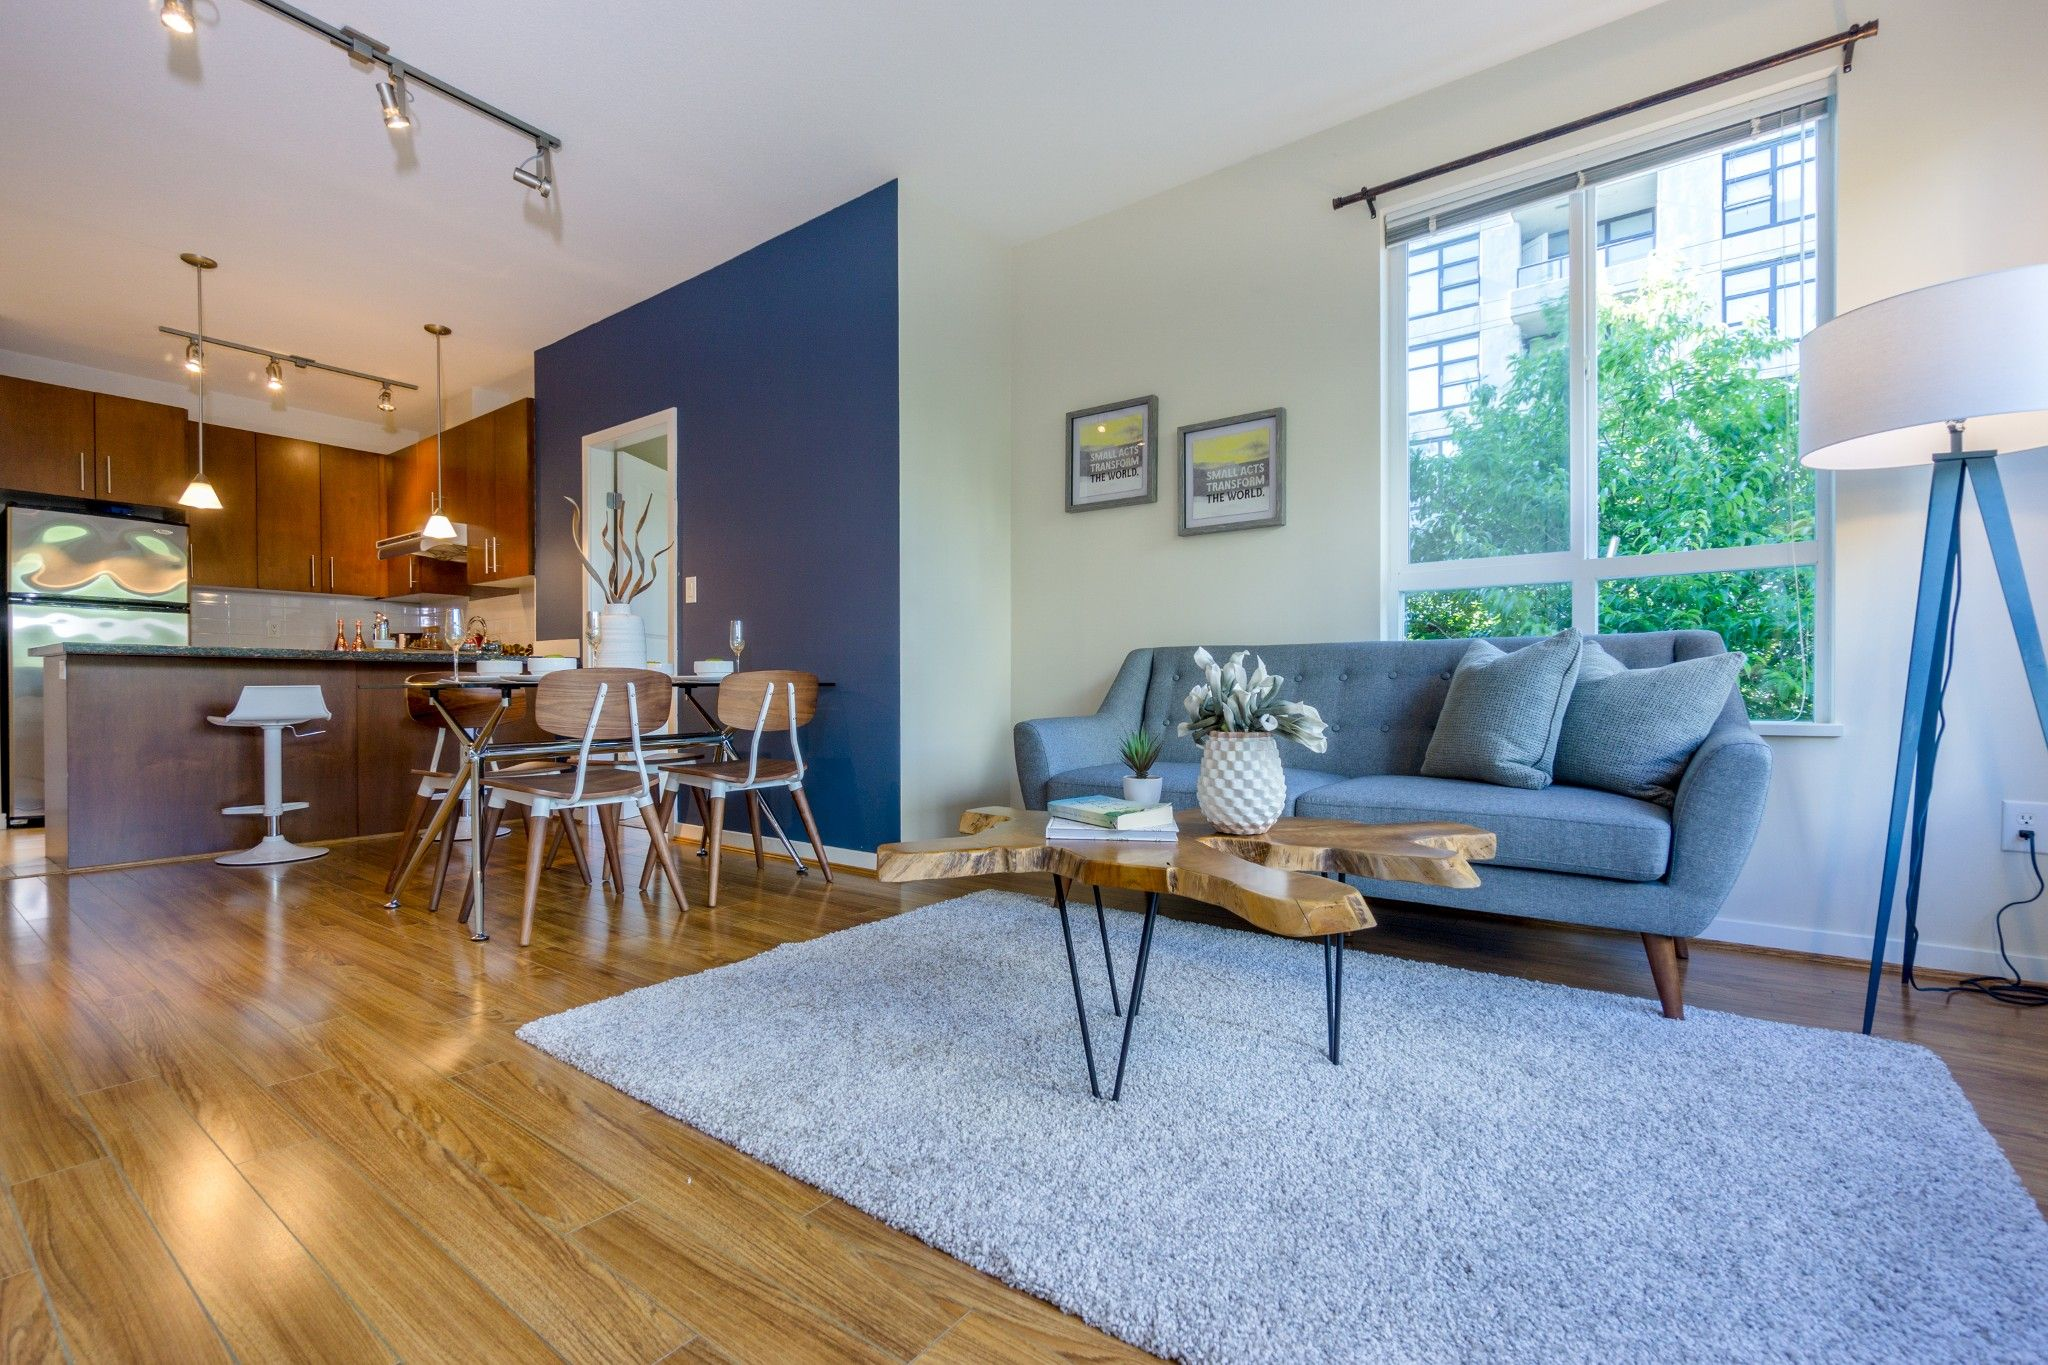 Photo 5: Photos: 208 3551 FOSTER Avenue in Vancouver: Collingwood VE Condo for sale (Vancouver East)  : MLS®# R2291555